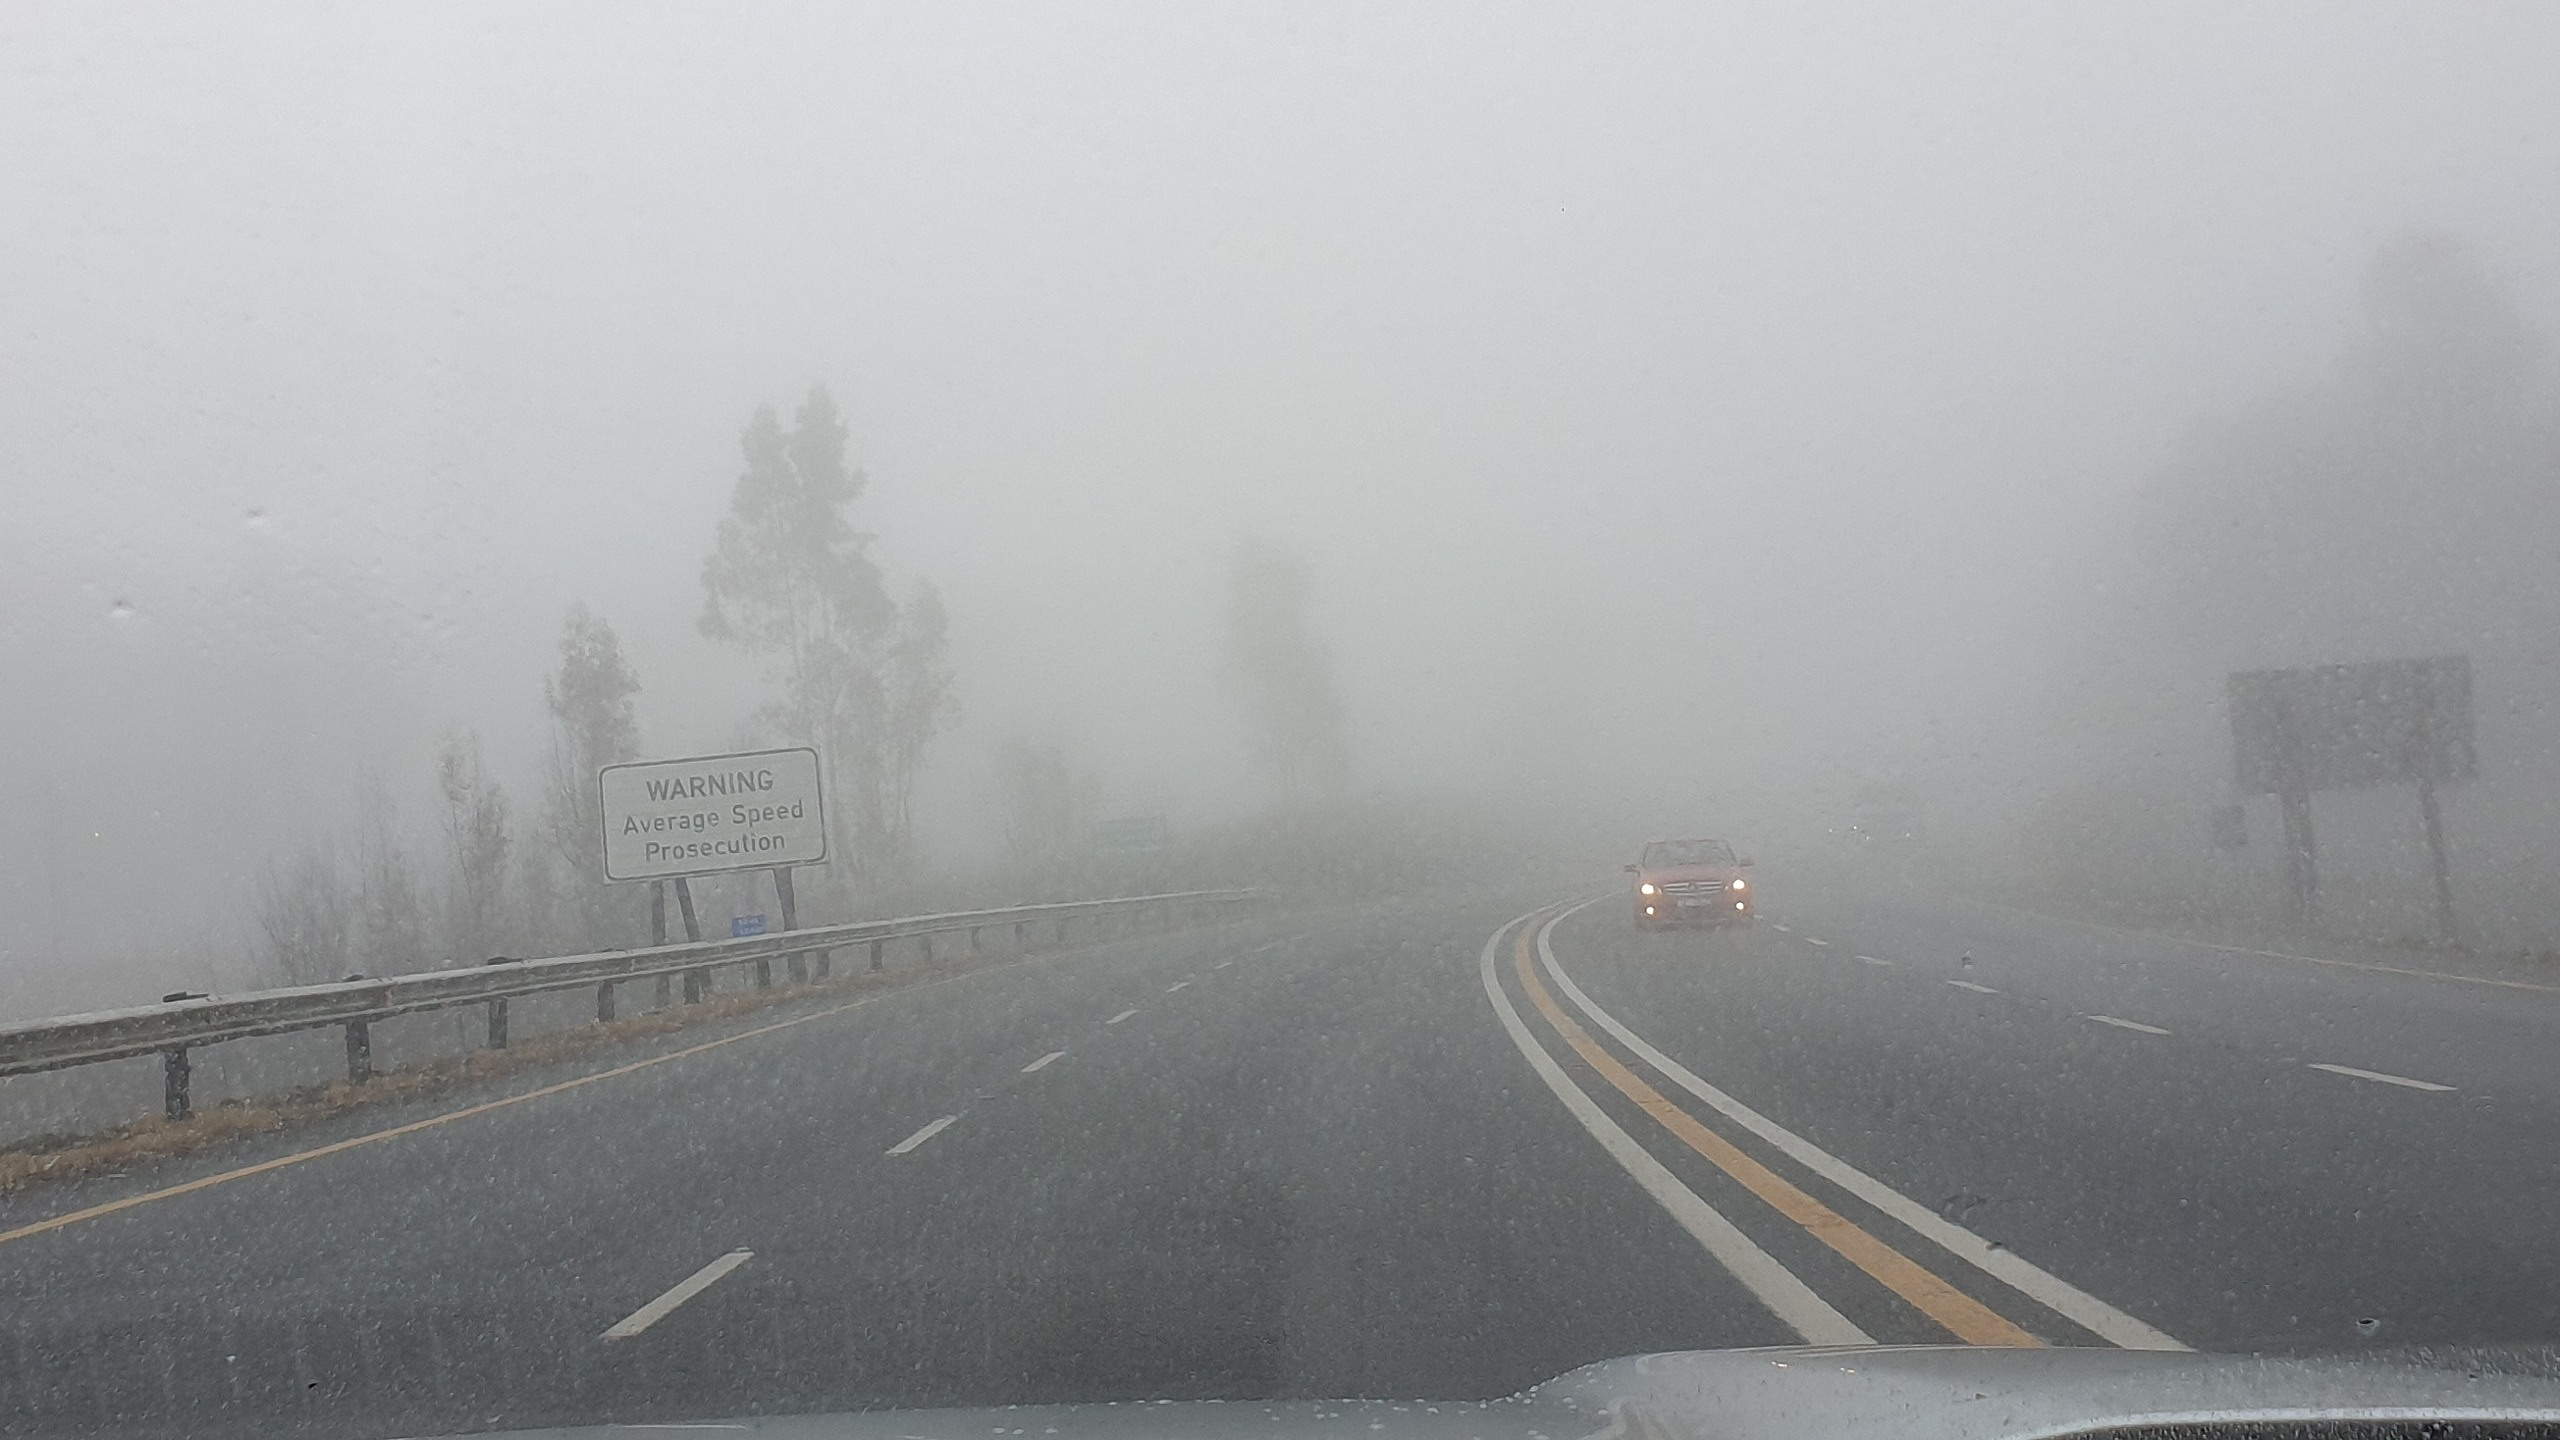 Van Reenen's pass in the mist. And it gets much thicker than this as the second picture accompanying this story shows.